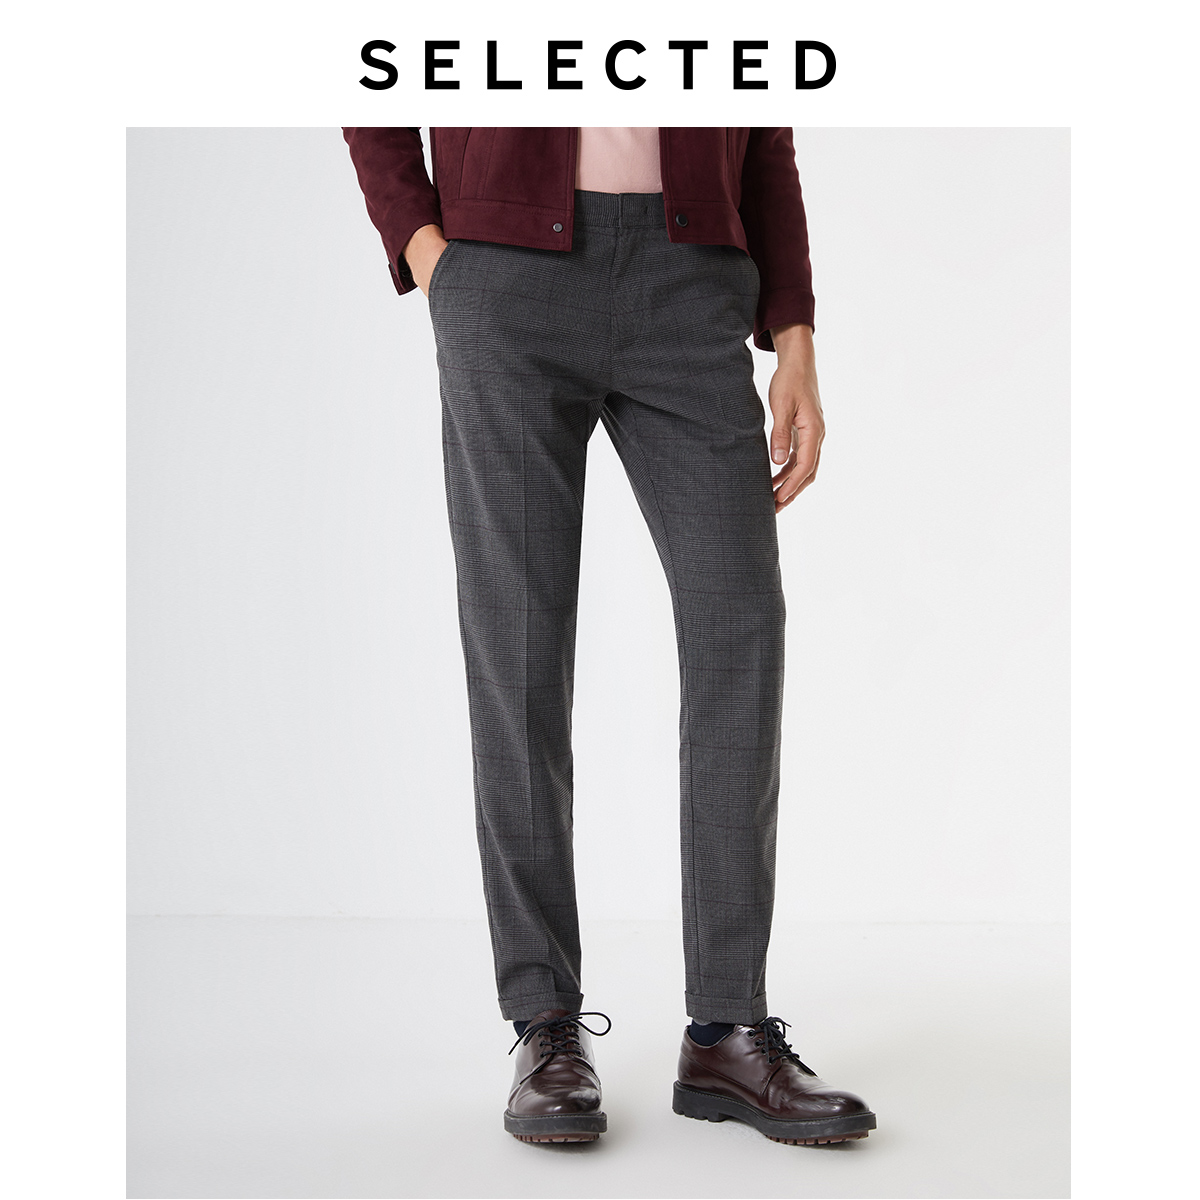 SELECTED Men's Slim Fit Checked Business-casual Pants S|419414522